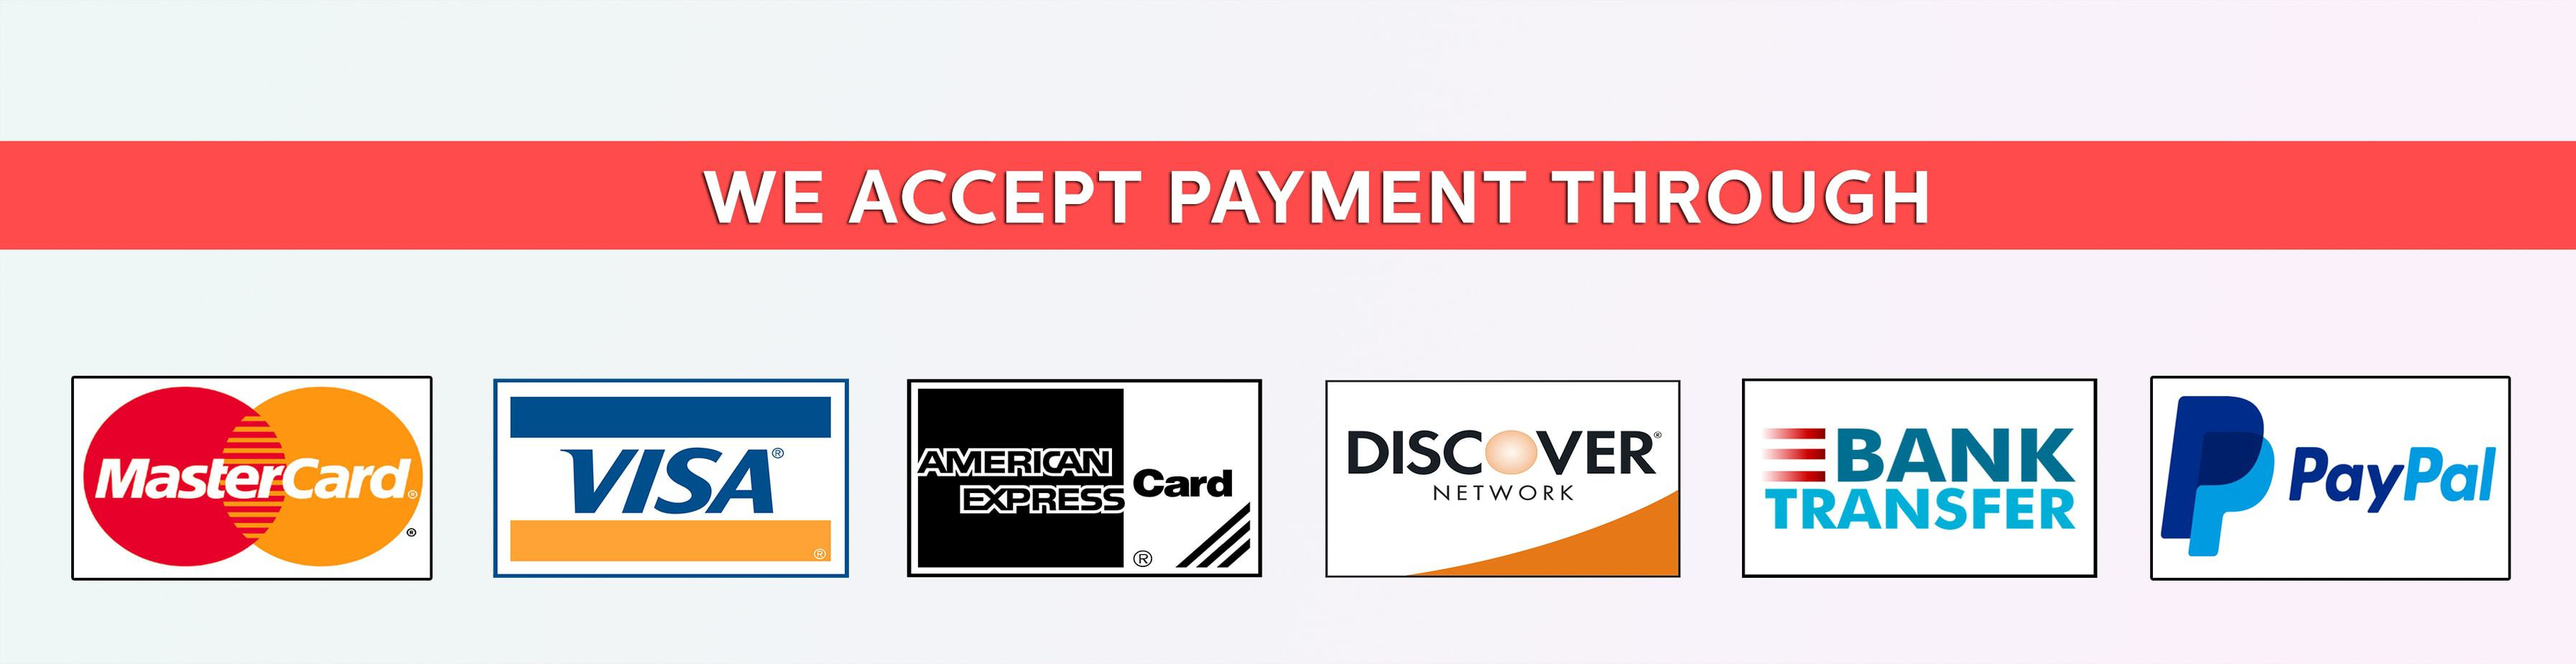 We accpet payment through paypal, bank transfer, visa, mastercard, discover, american express